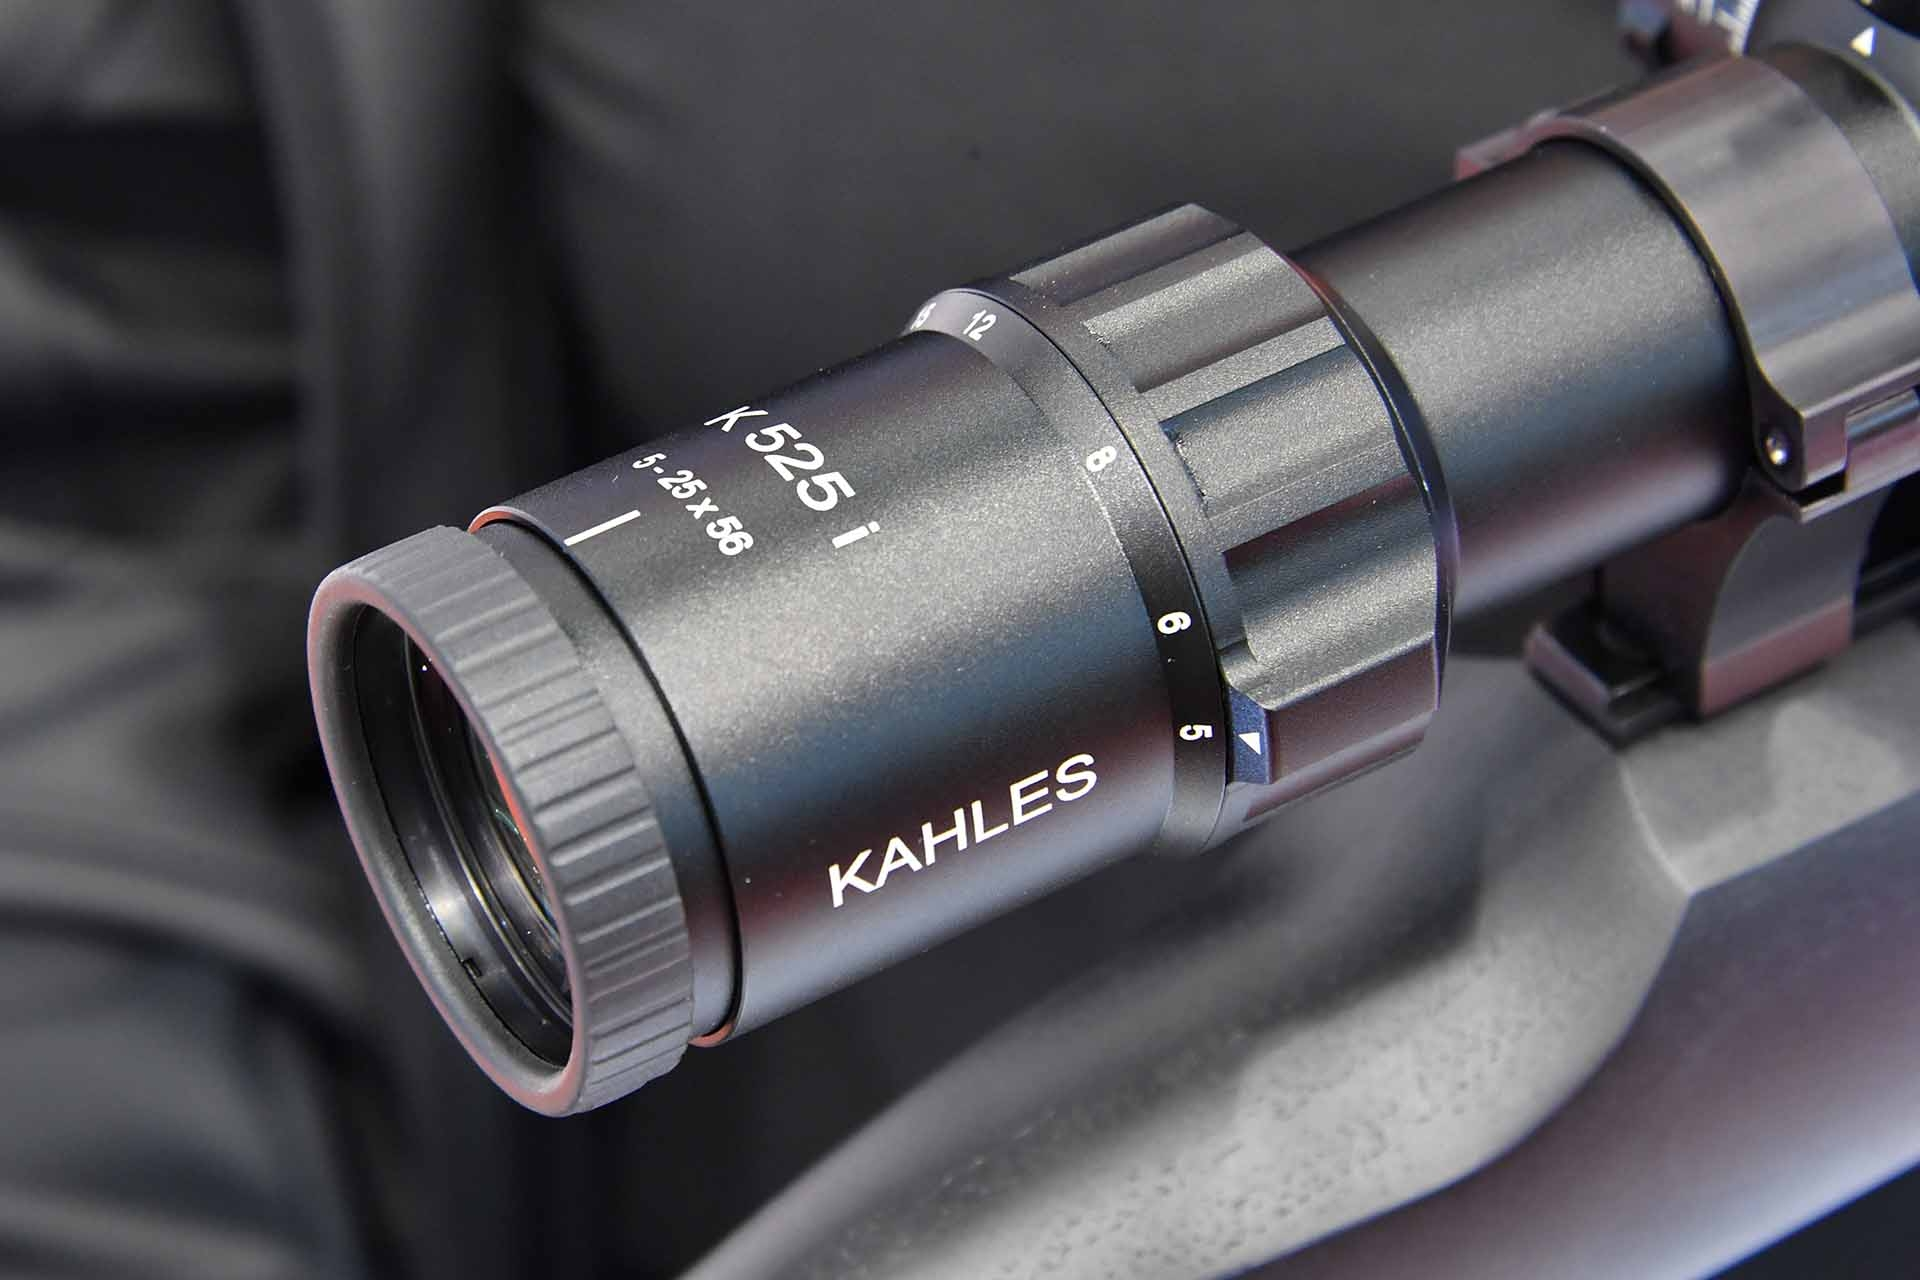 Eyepiece of the K525i riflescope